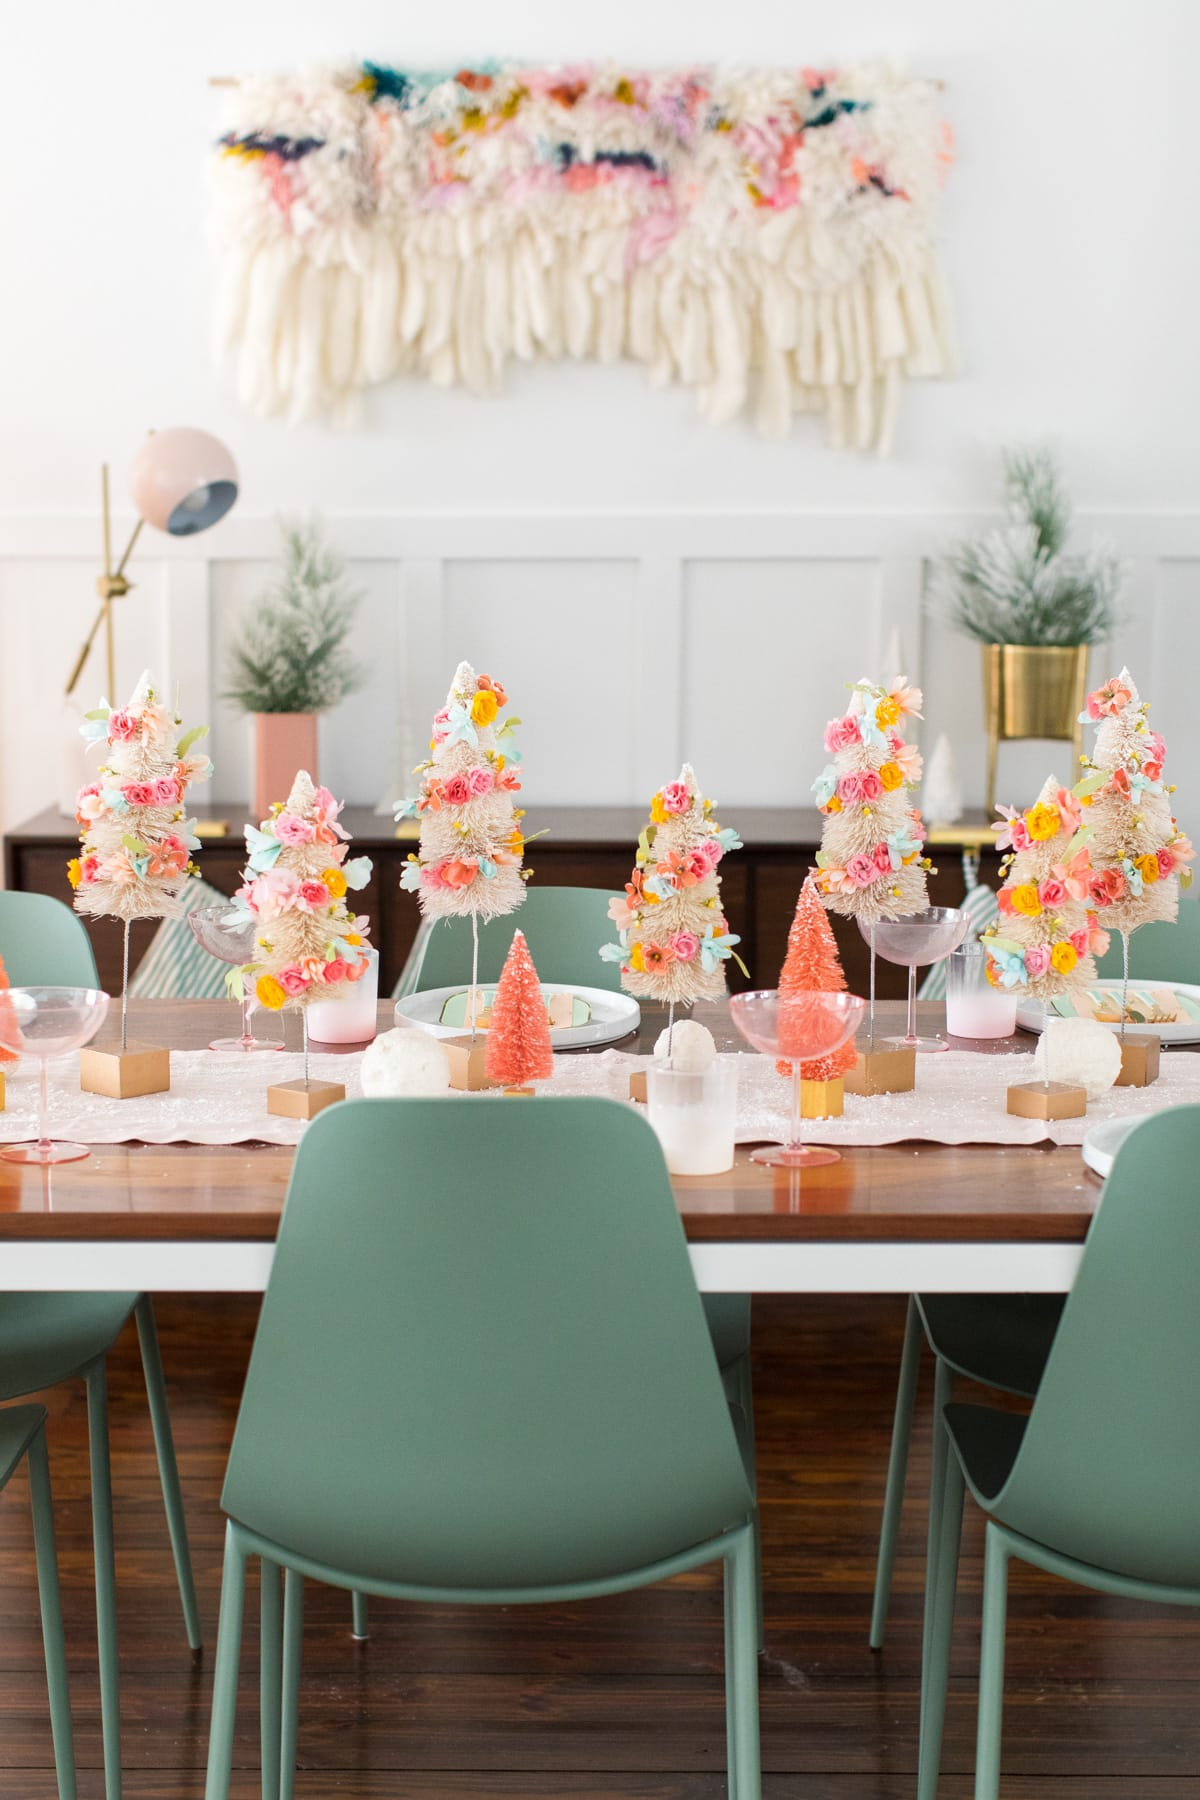 a unique christmas table runner idea - Faux Flower Bottle Brush Tree DIY Christmas Centerpiece Idea by top Houston lifestyle blogger Ashley Rose of Sugar and Cloth #diy #christmas #decor #howto #craft #entertaining #centerpiece #ideas